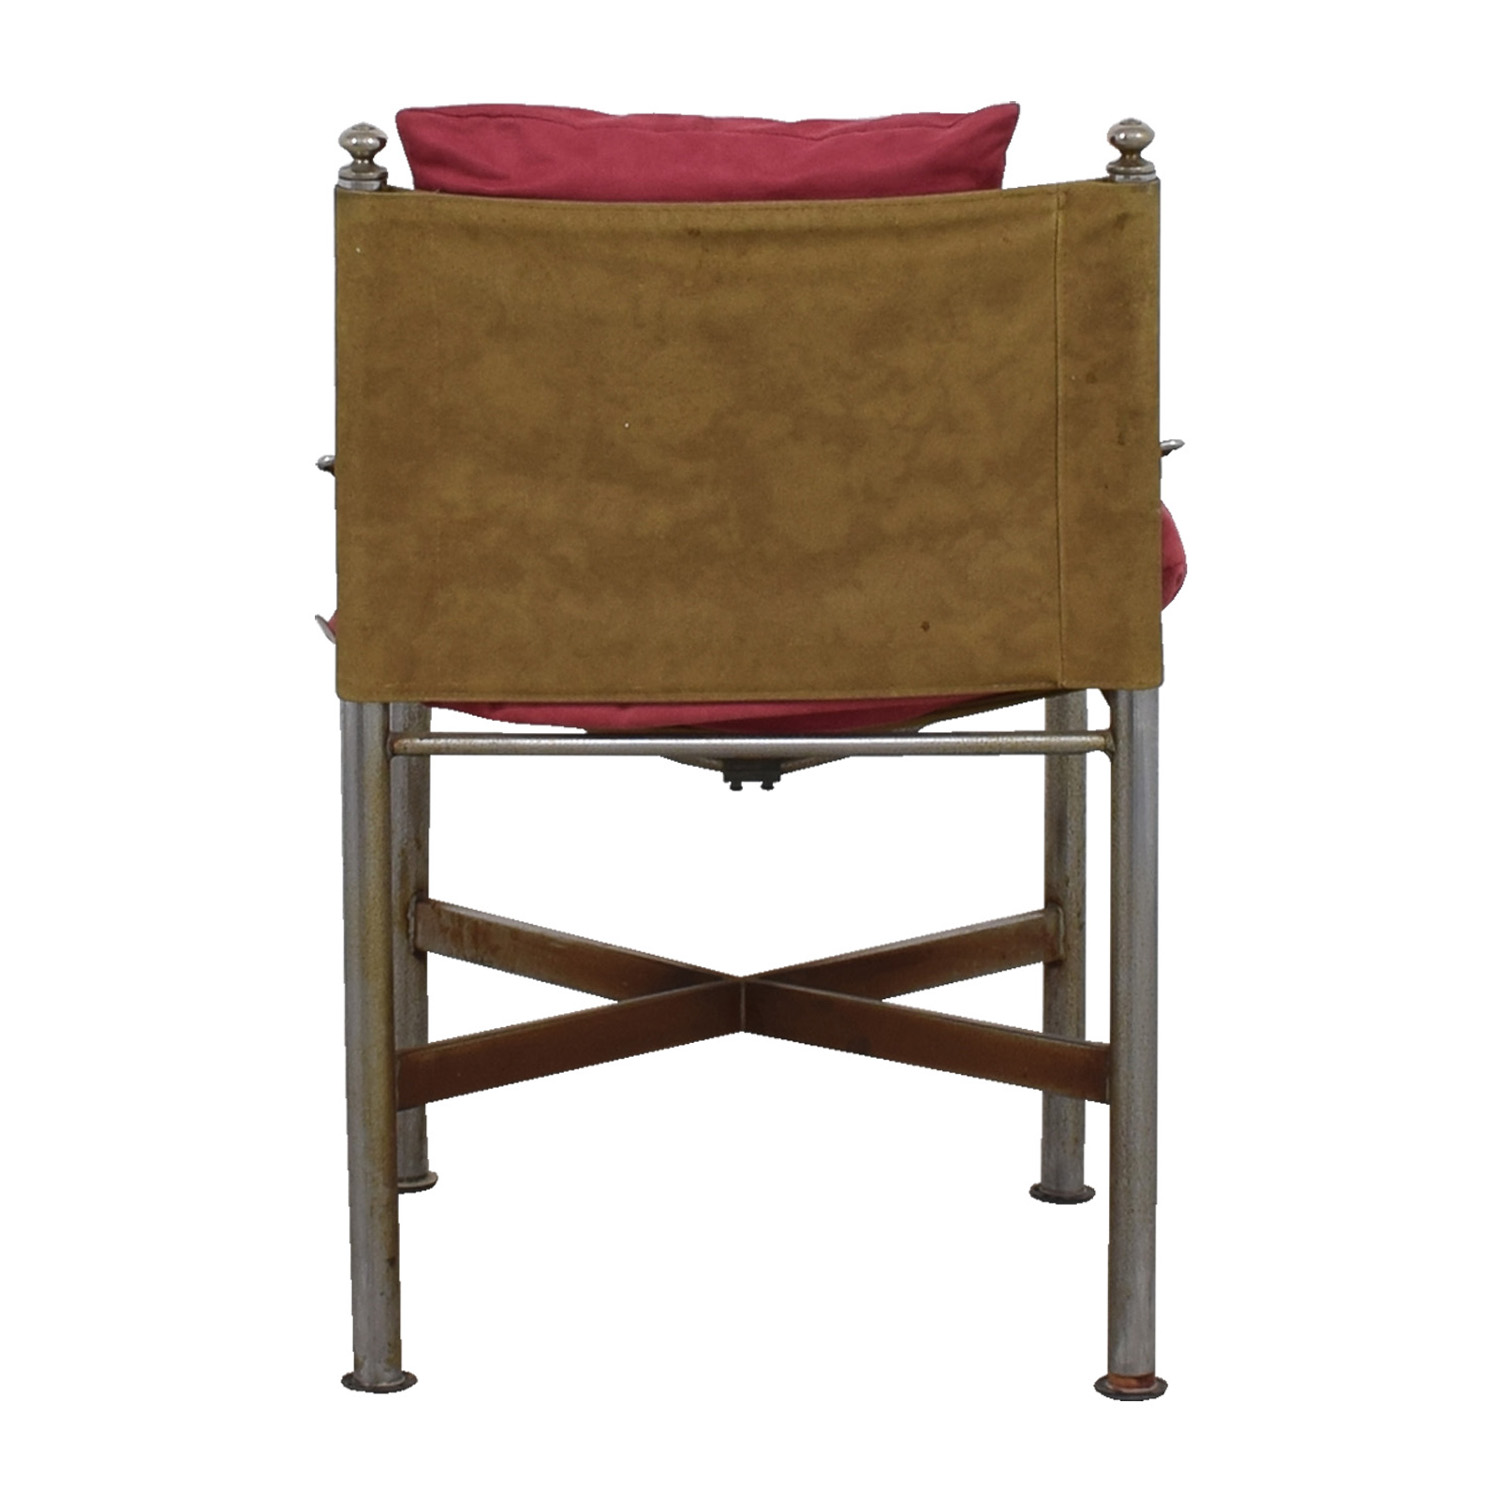 Retro Pink and Tan Suede and Leather Chair / Chairs